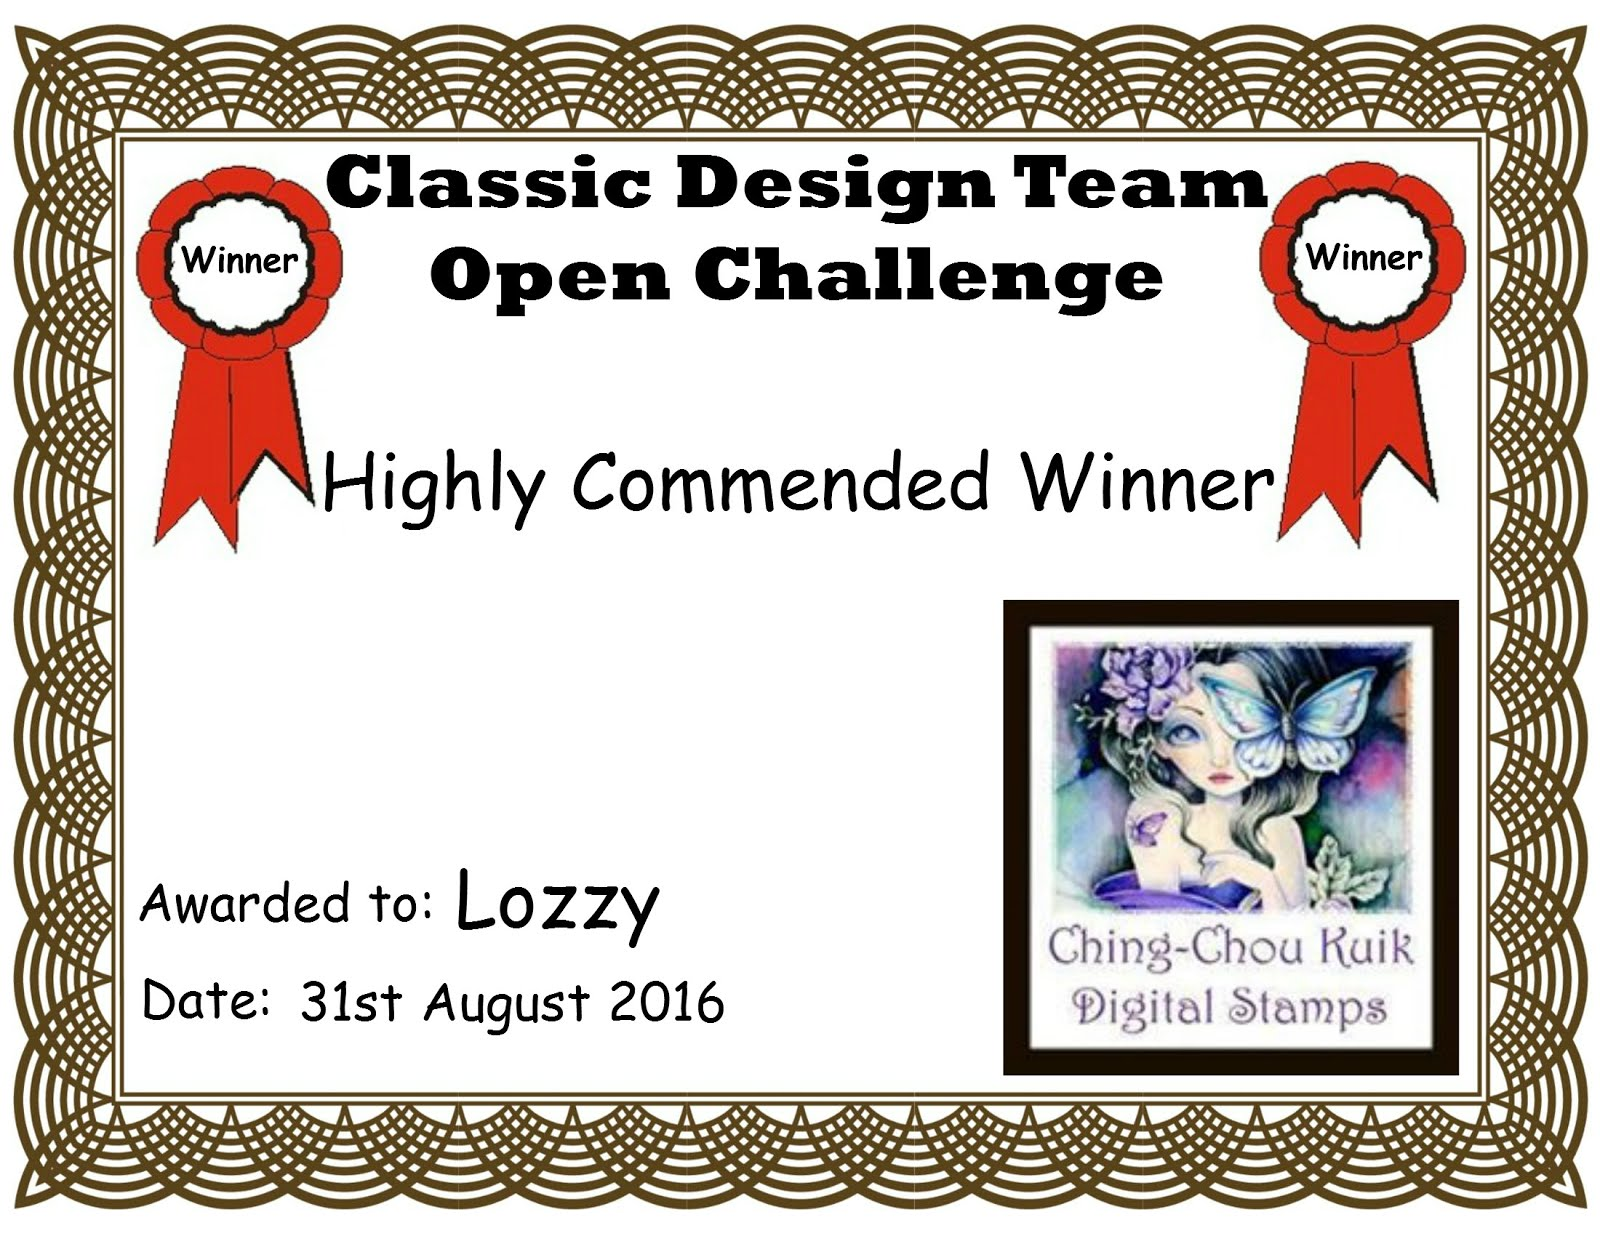 Highly Commended Winner/thank you